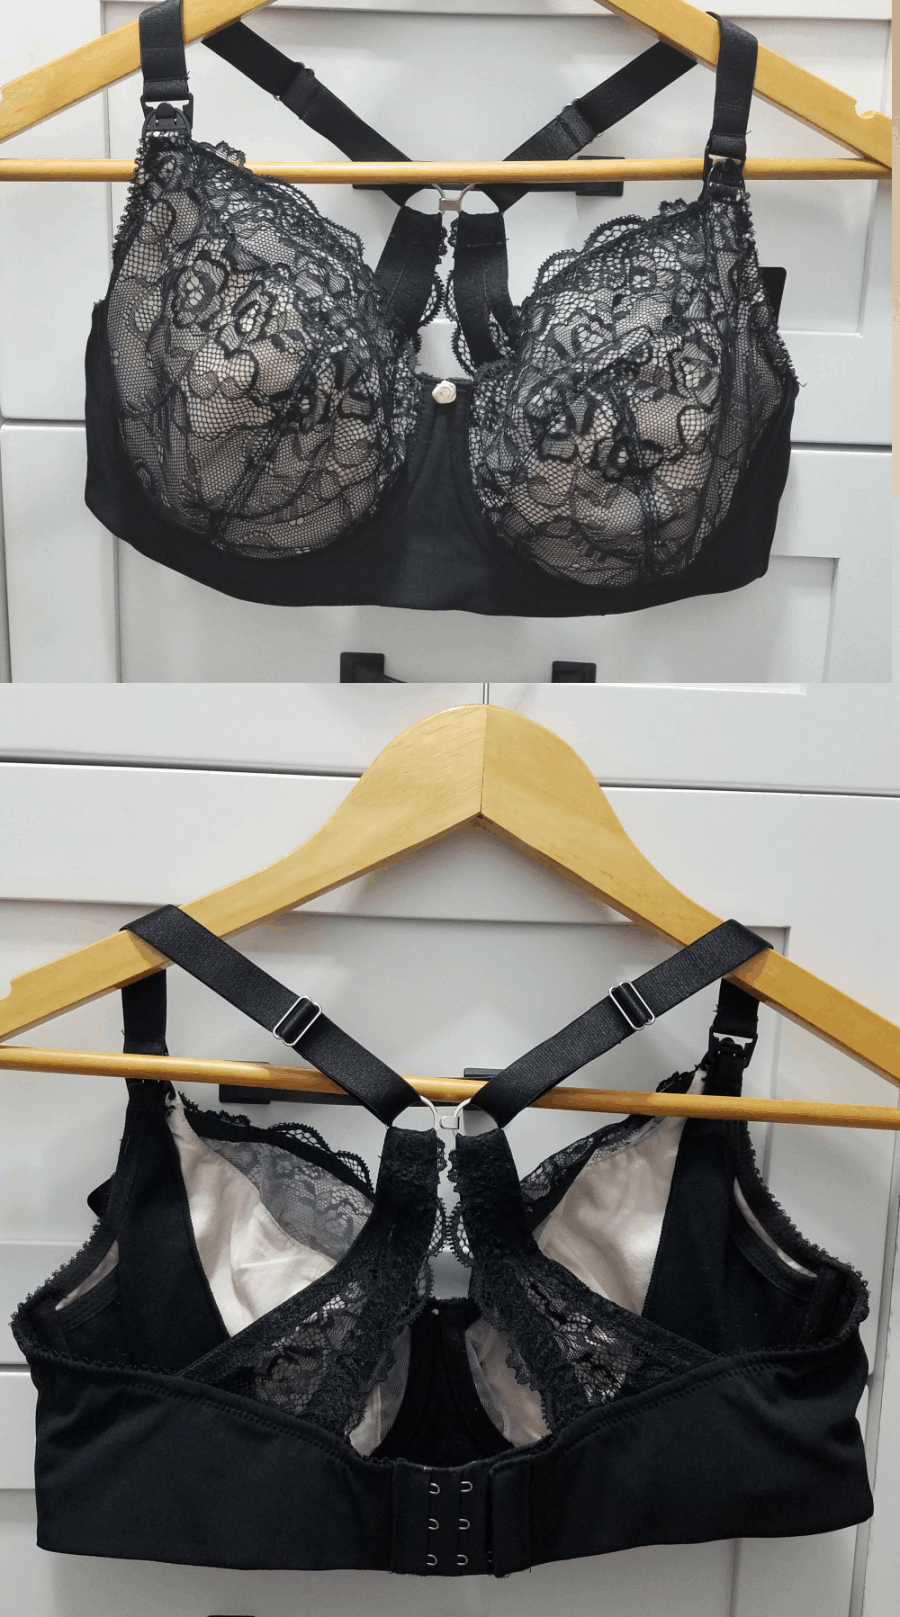 buying bras during pregnancy